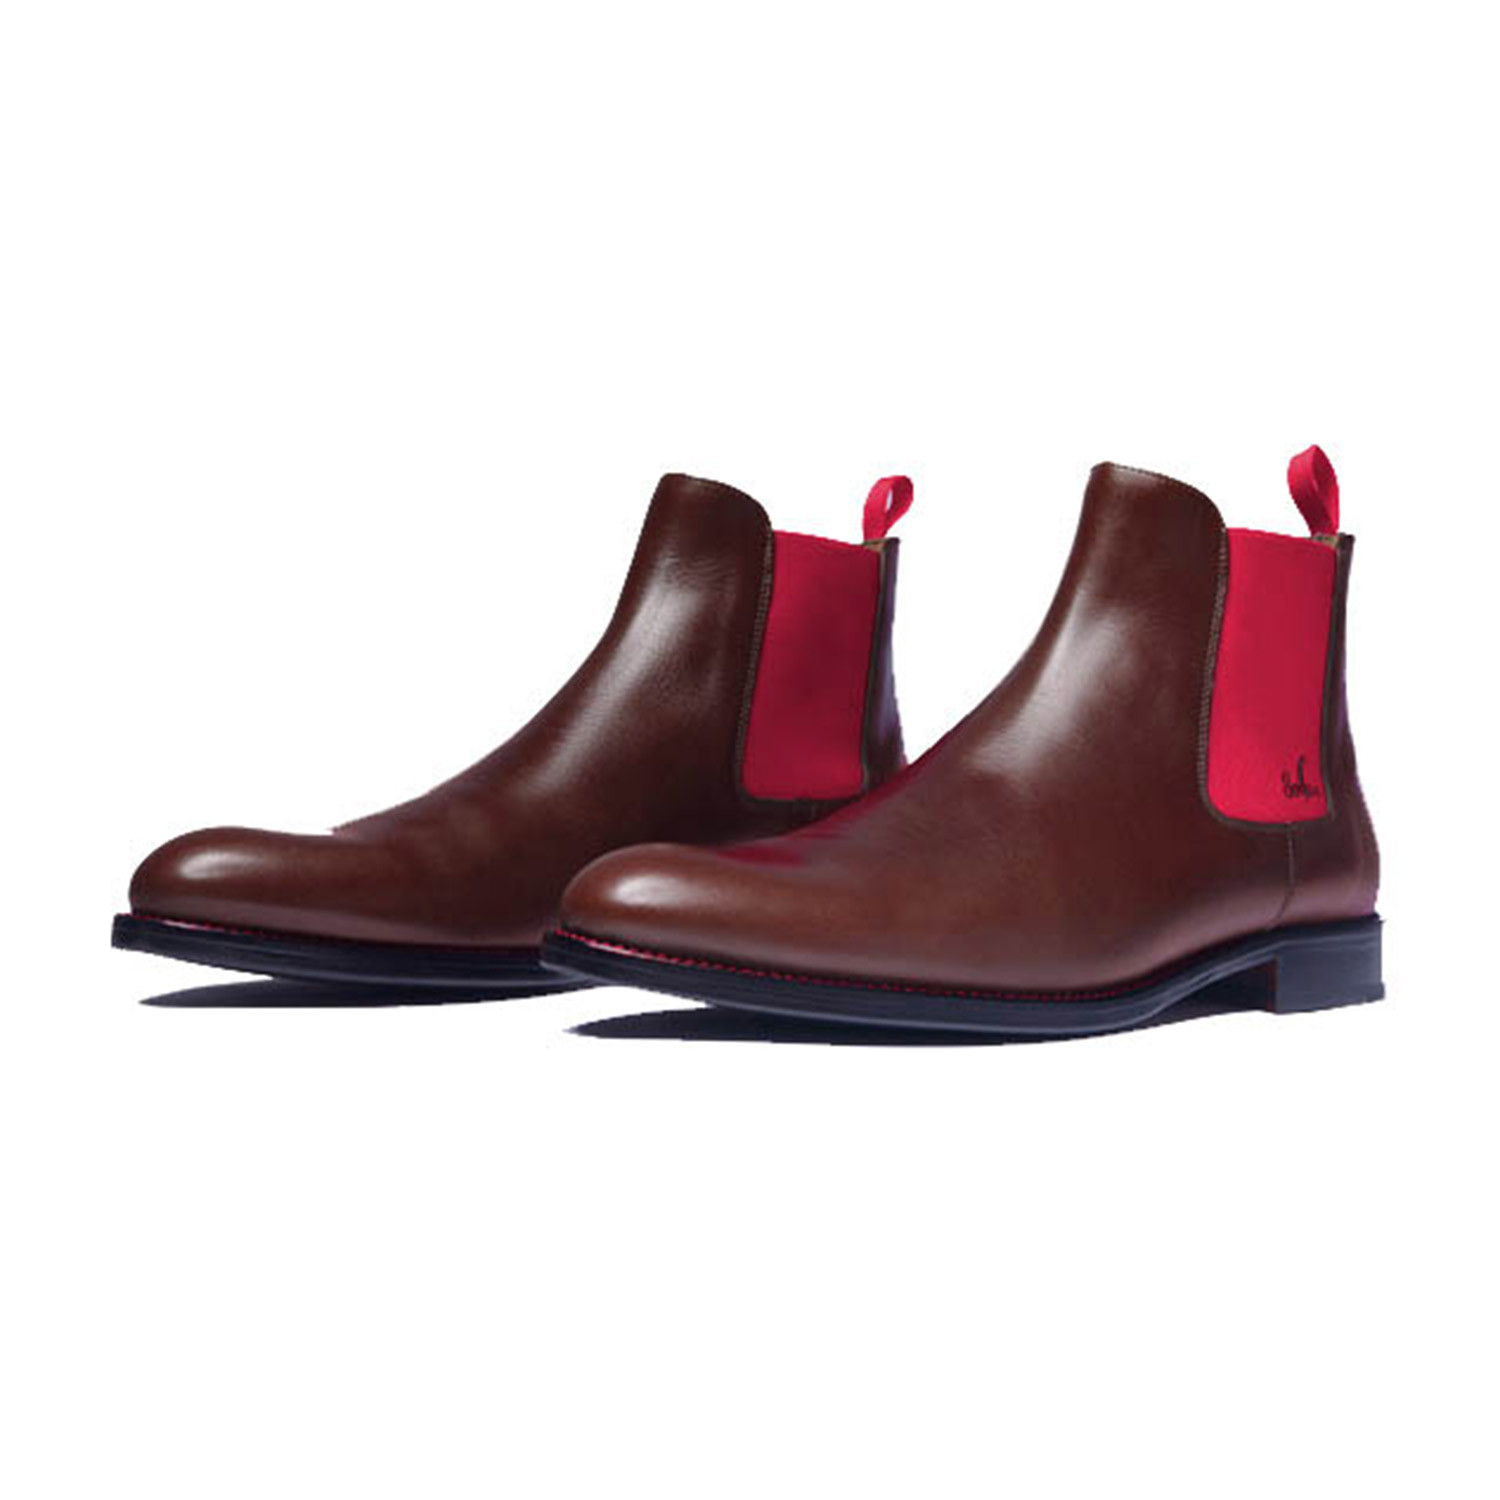 5a91bdbd7d209c Calf Leather Chelsea Boots    Brown + Red (Euro  39) - Serfan ...